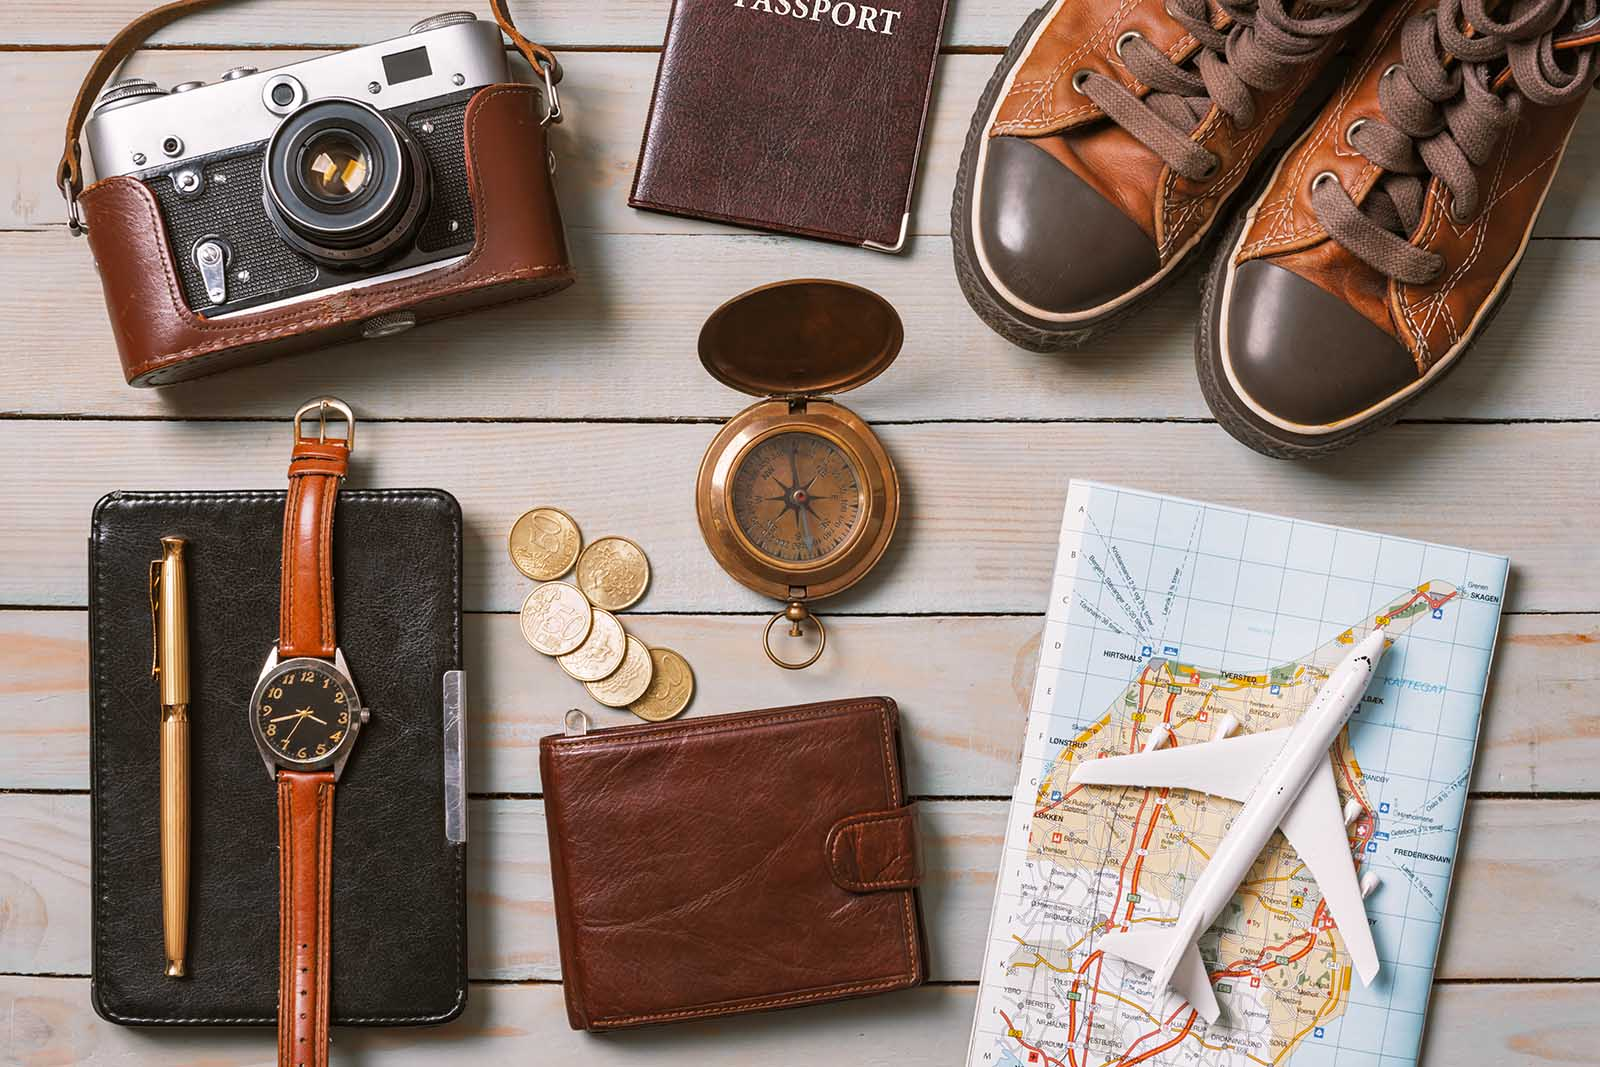 What are the 10 Travel Essentials for a Hassle-Free Family Vacation?